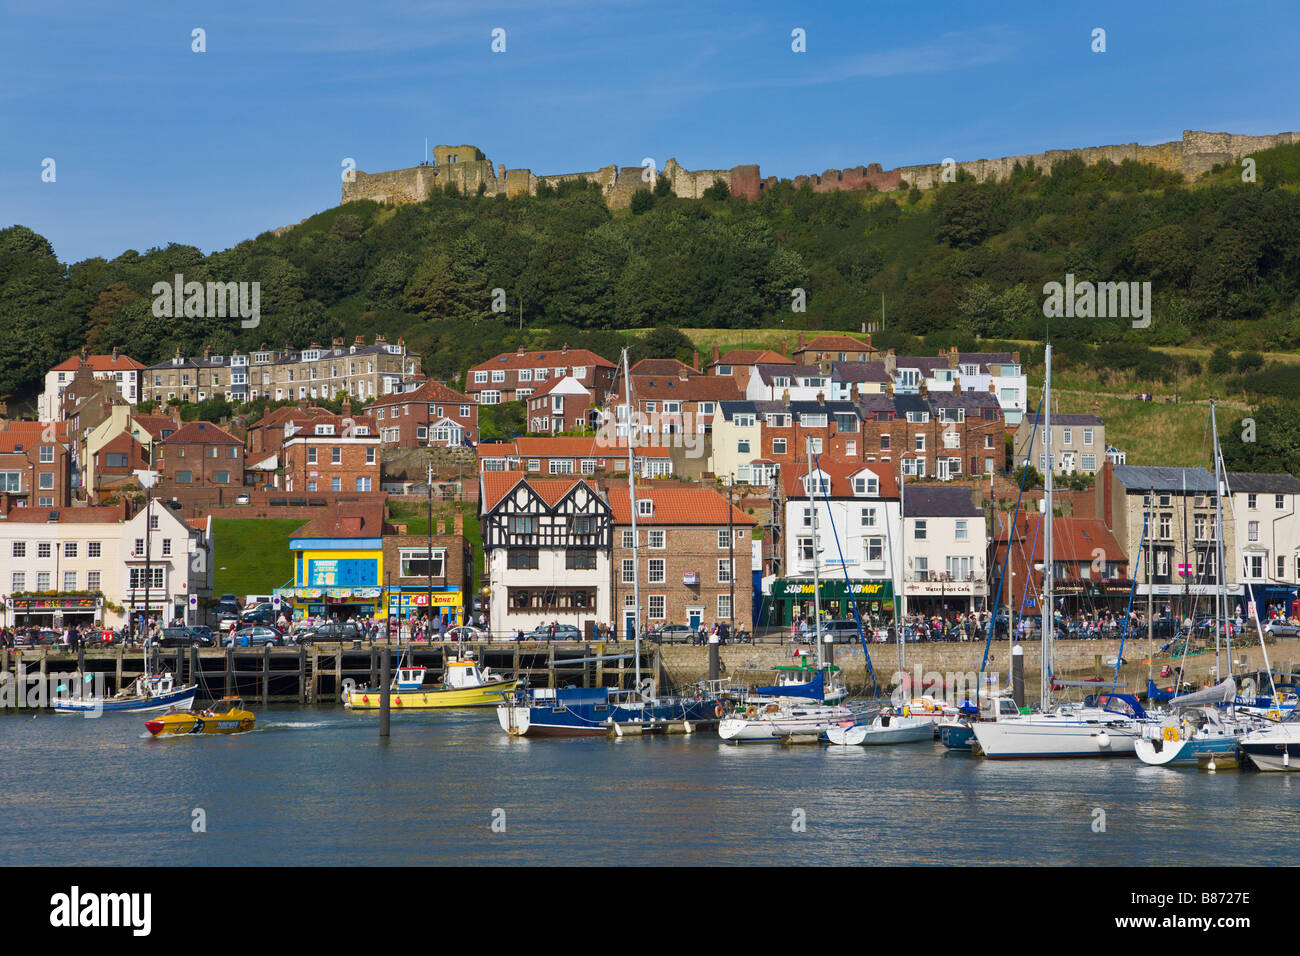 Scarborough, 'North Yorkshire', England - Stock Image